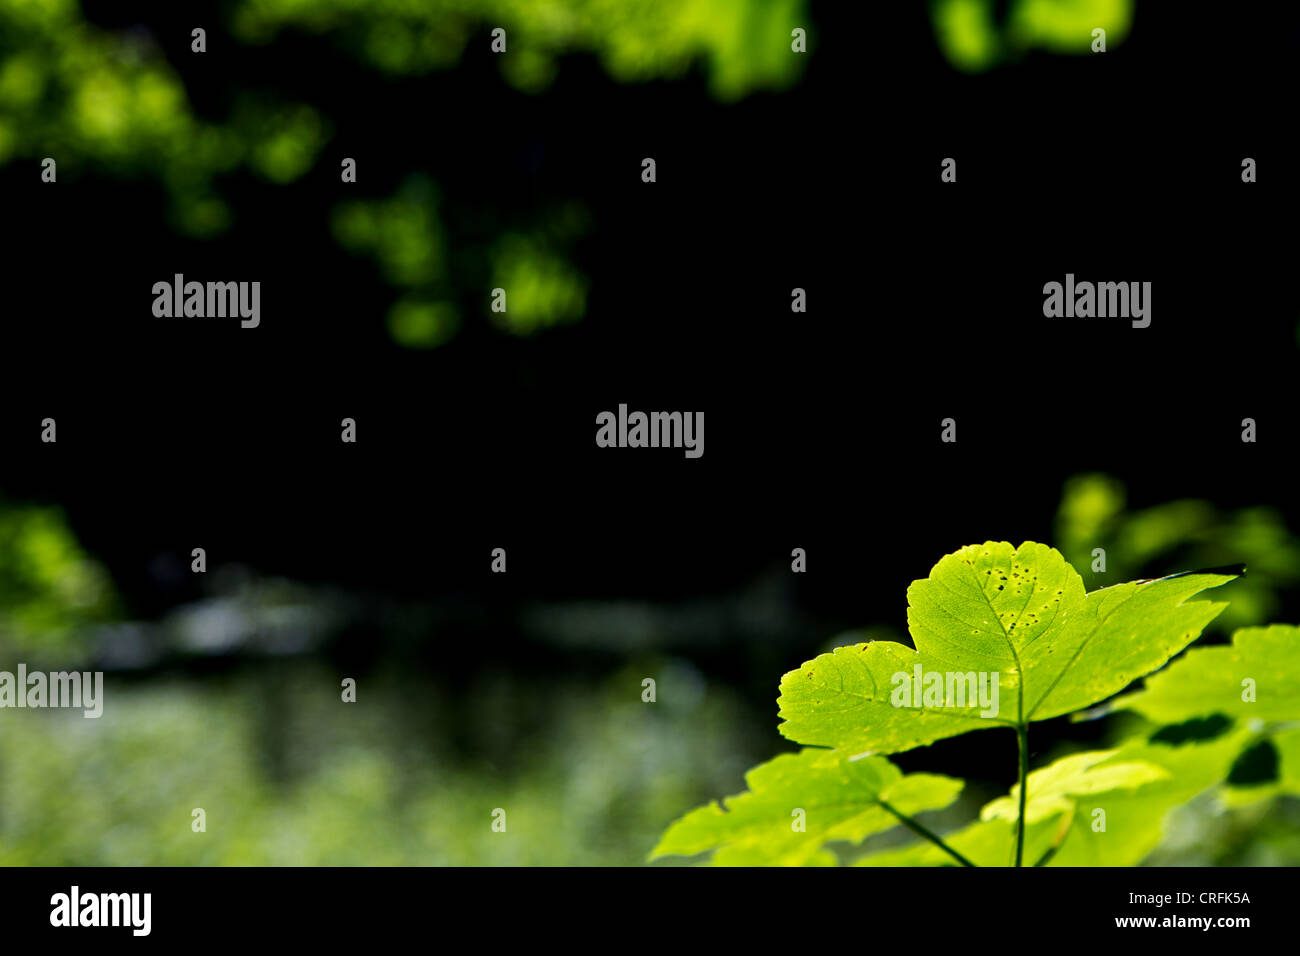 green leaves in foreground with blurry, dark background - Stock Image